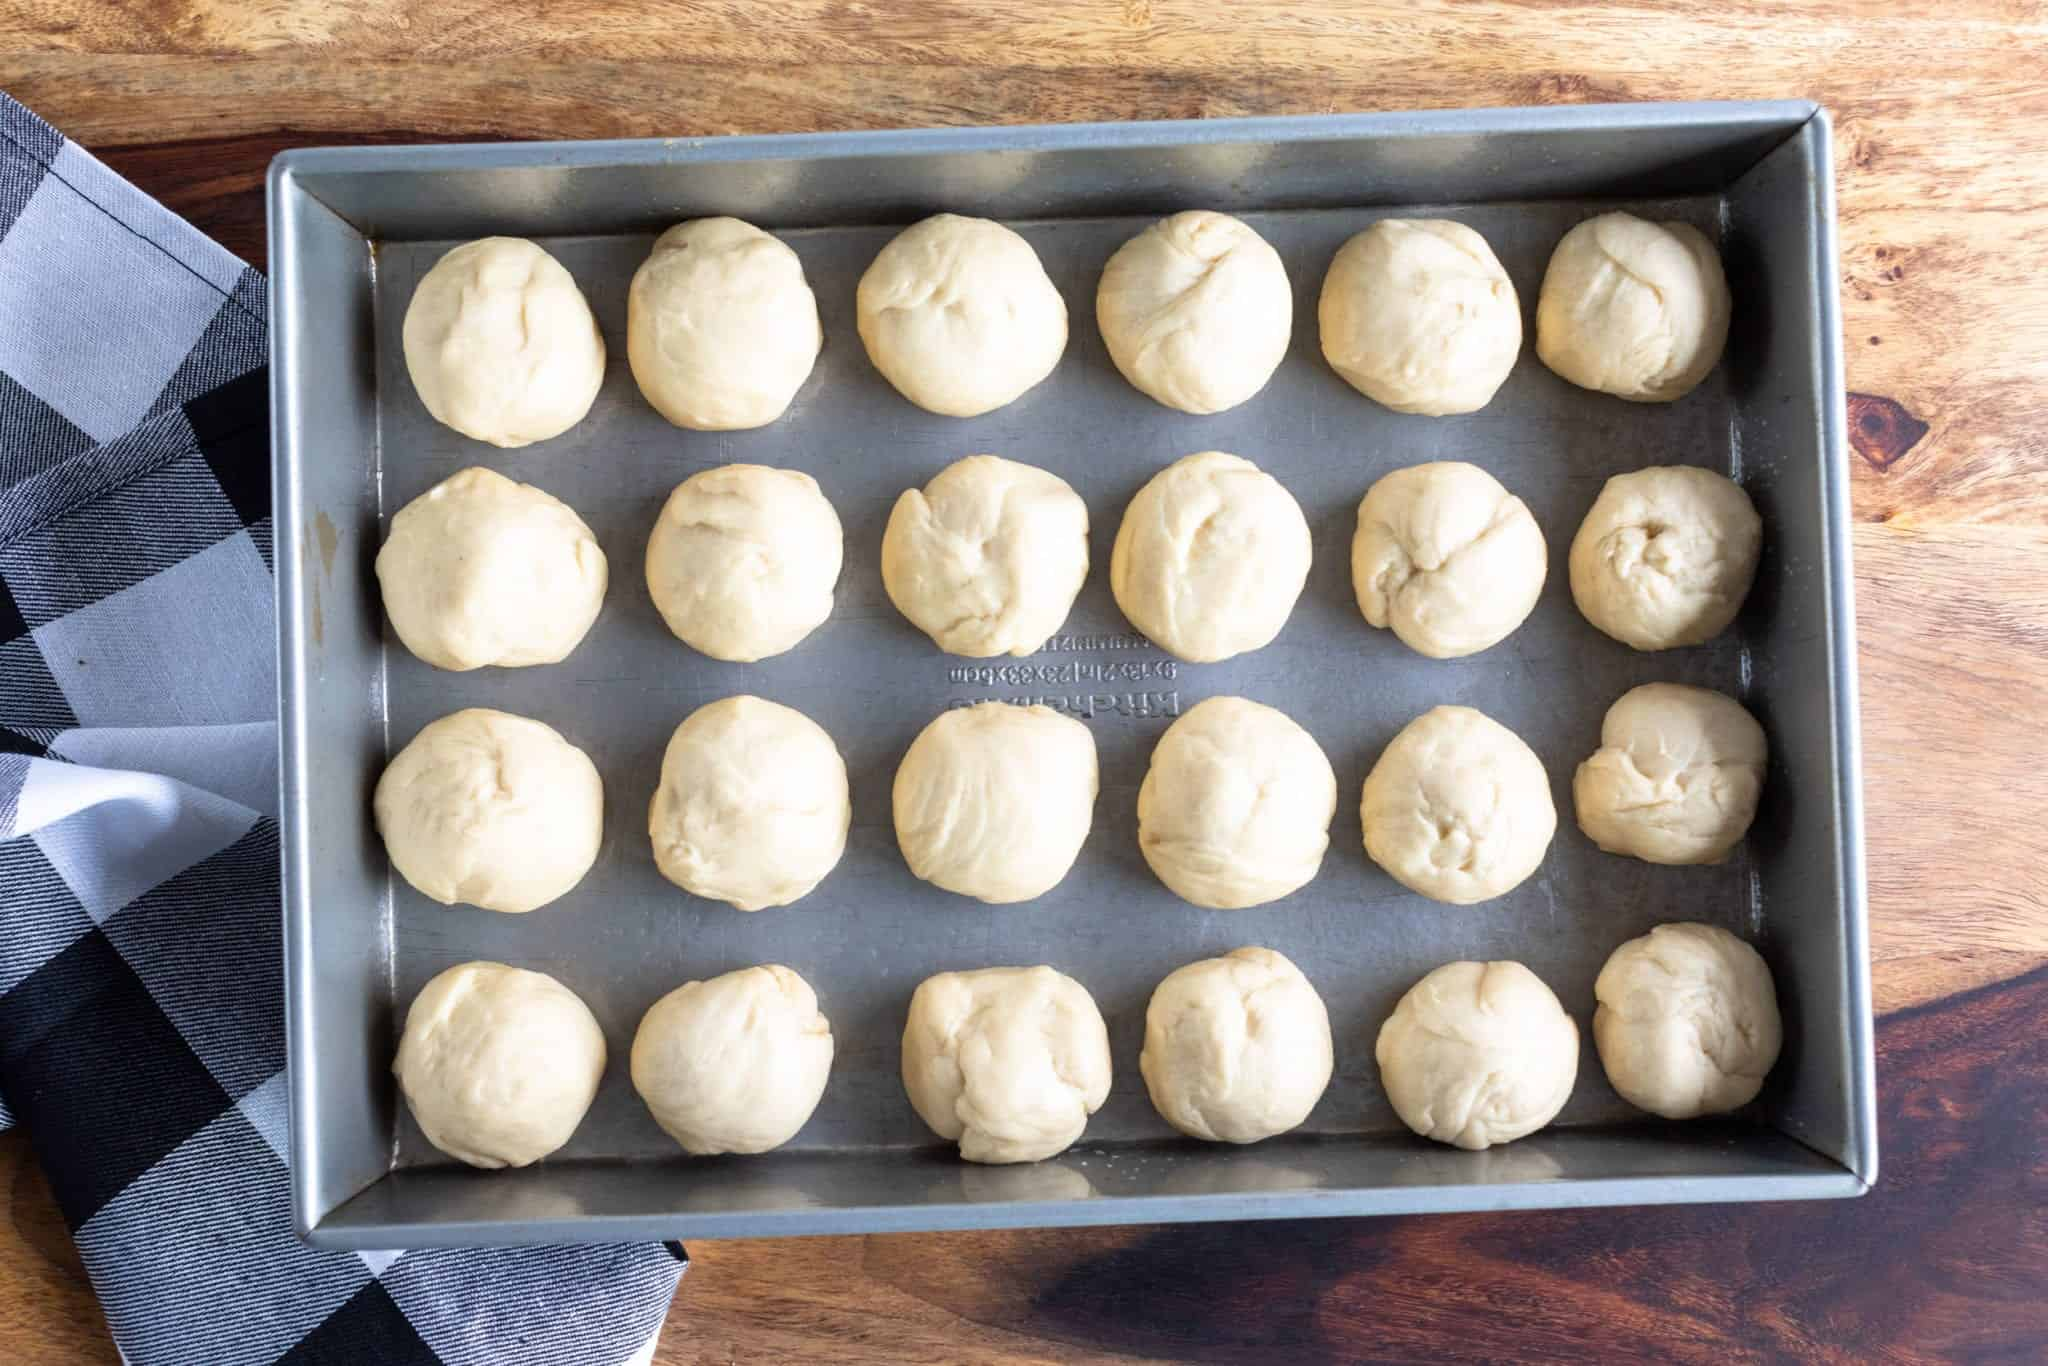 Hawaiian sweet roll dough evenly portioned into 24 rolls in 9 x 13 bakeware dish ready before rising and proofing.